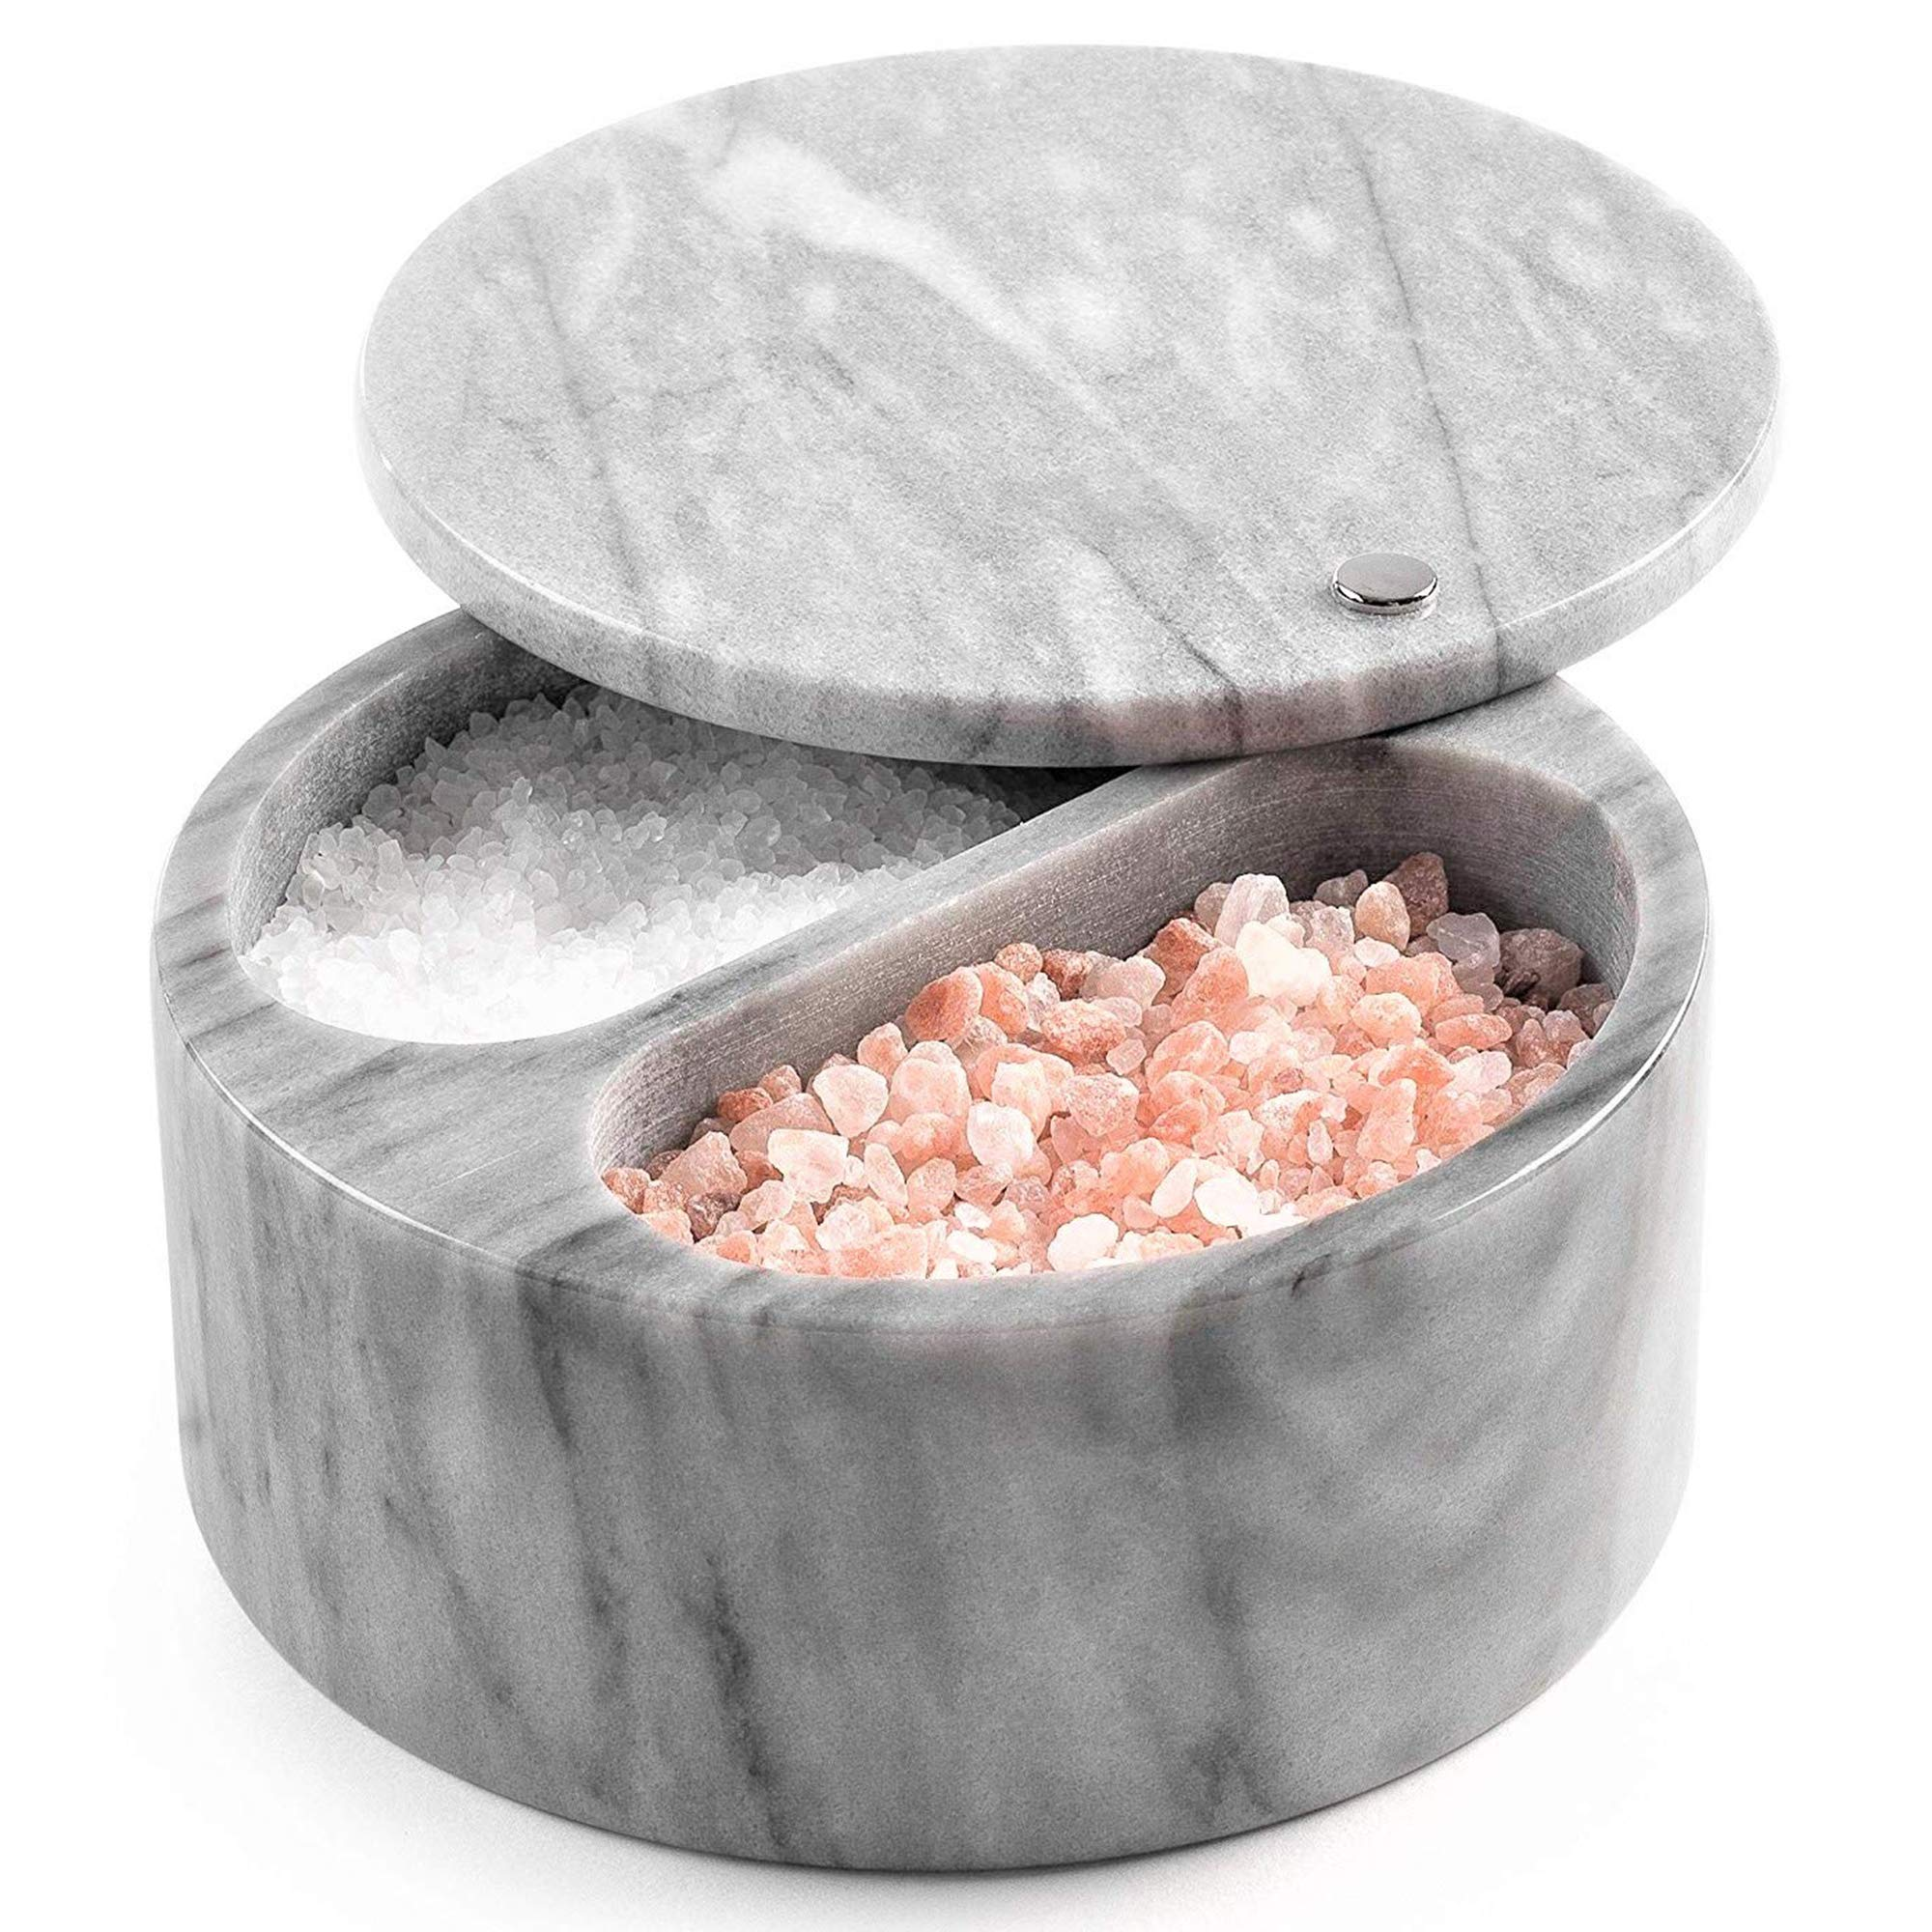 Salt Cellar with Swivel Top and Dual Compartment Elegant Grey Marble Salt Box with Lid for Salt, Spice and Herbs Storage - 5 Ounce Capacity (Grey)